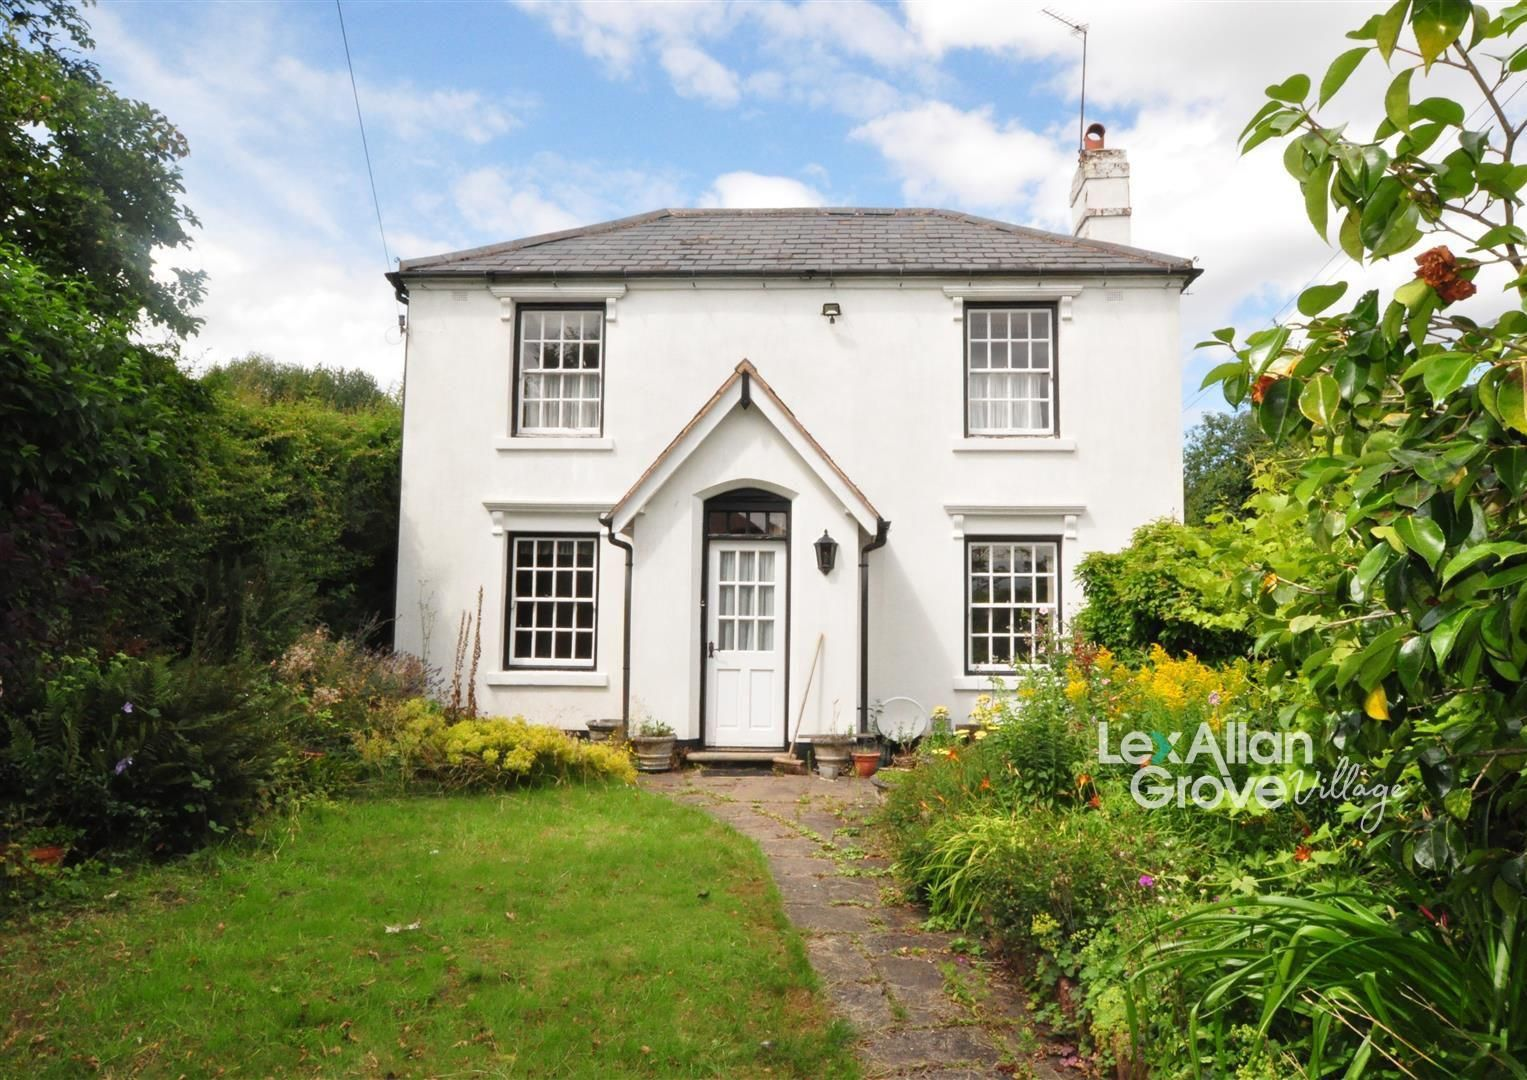 4 bed house for sale in Clent, DY9